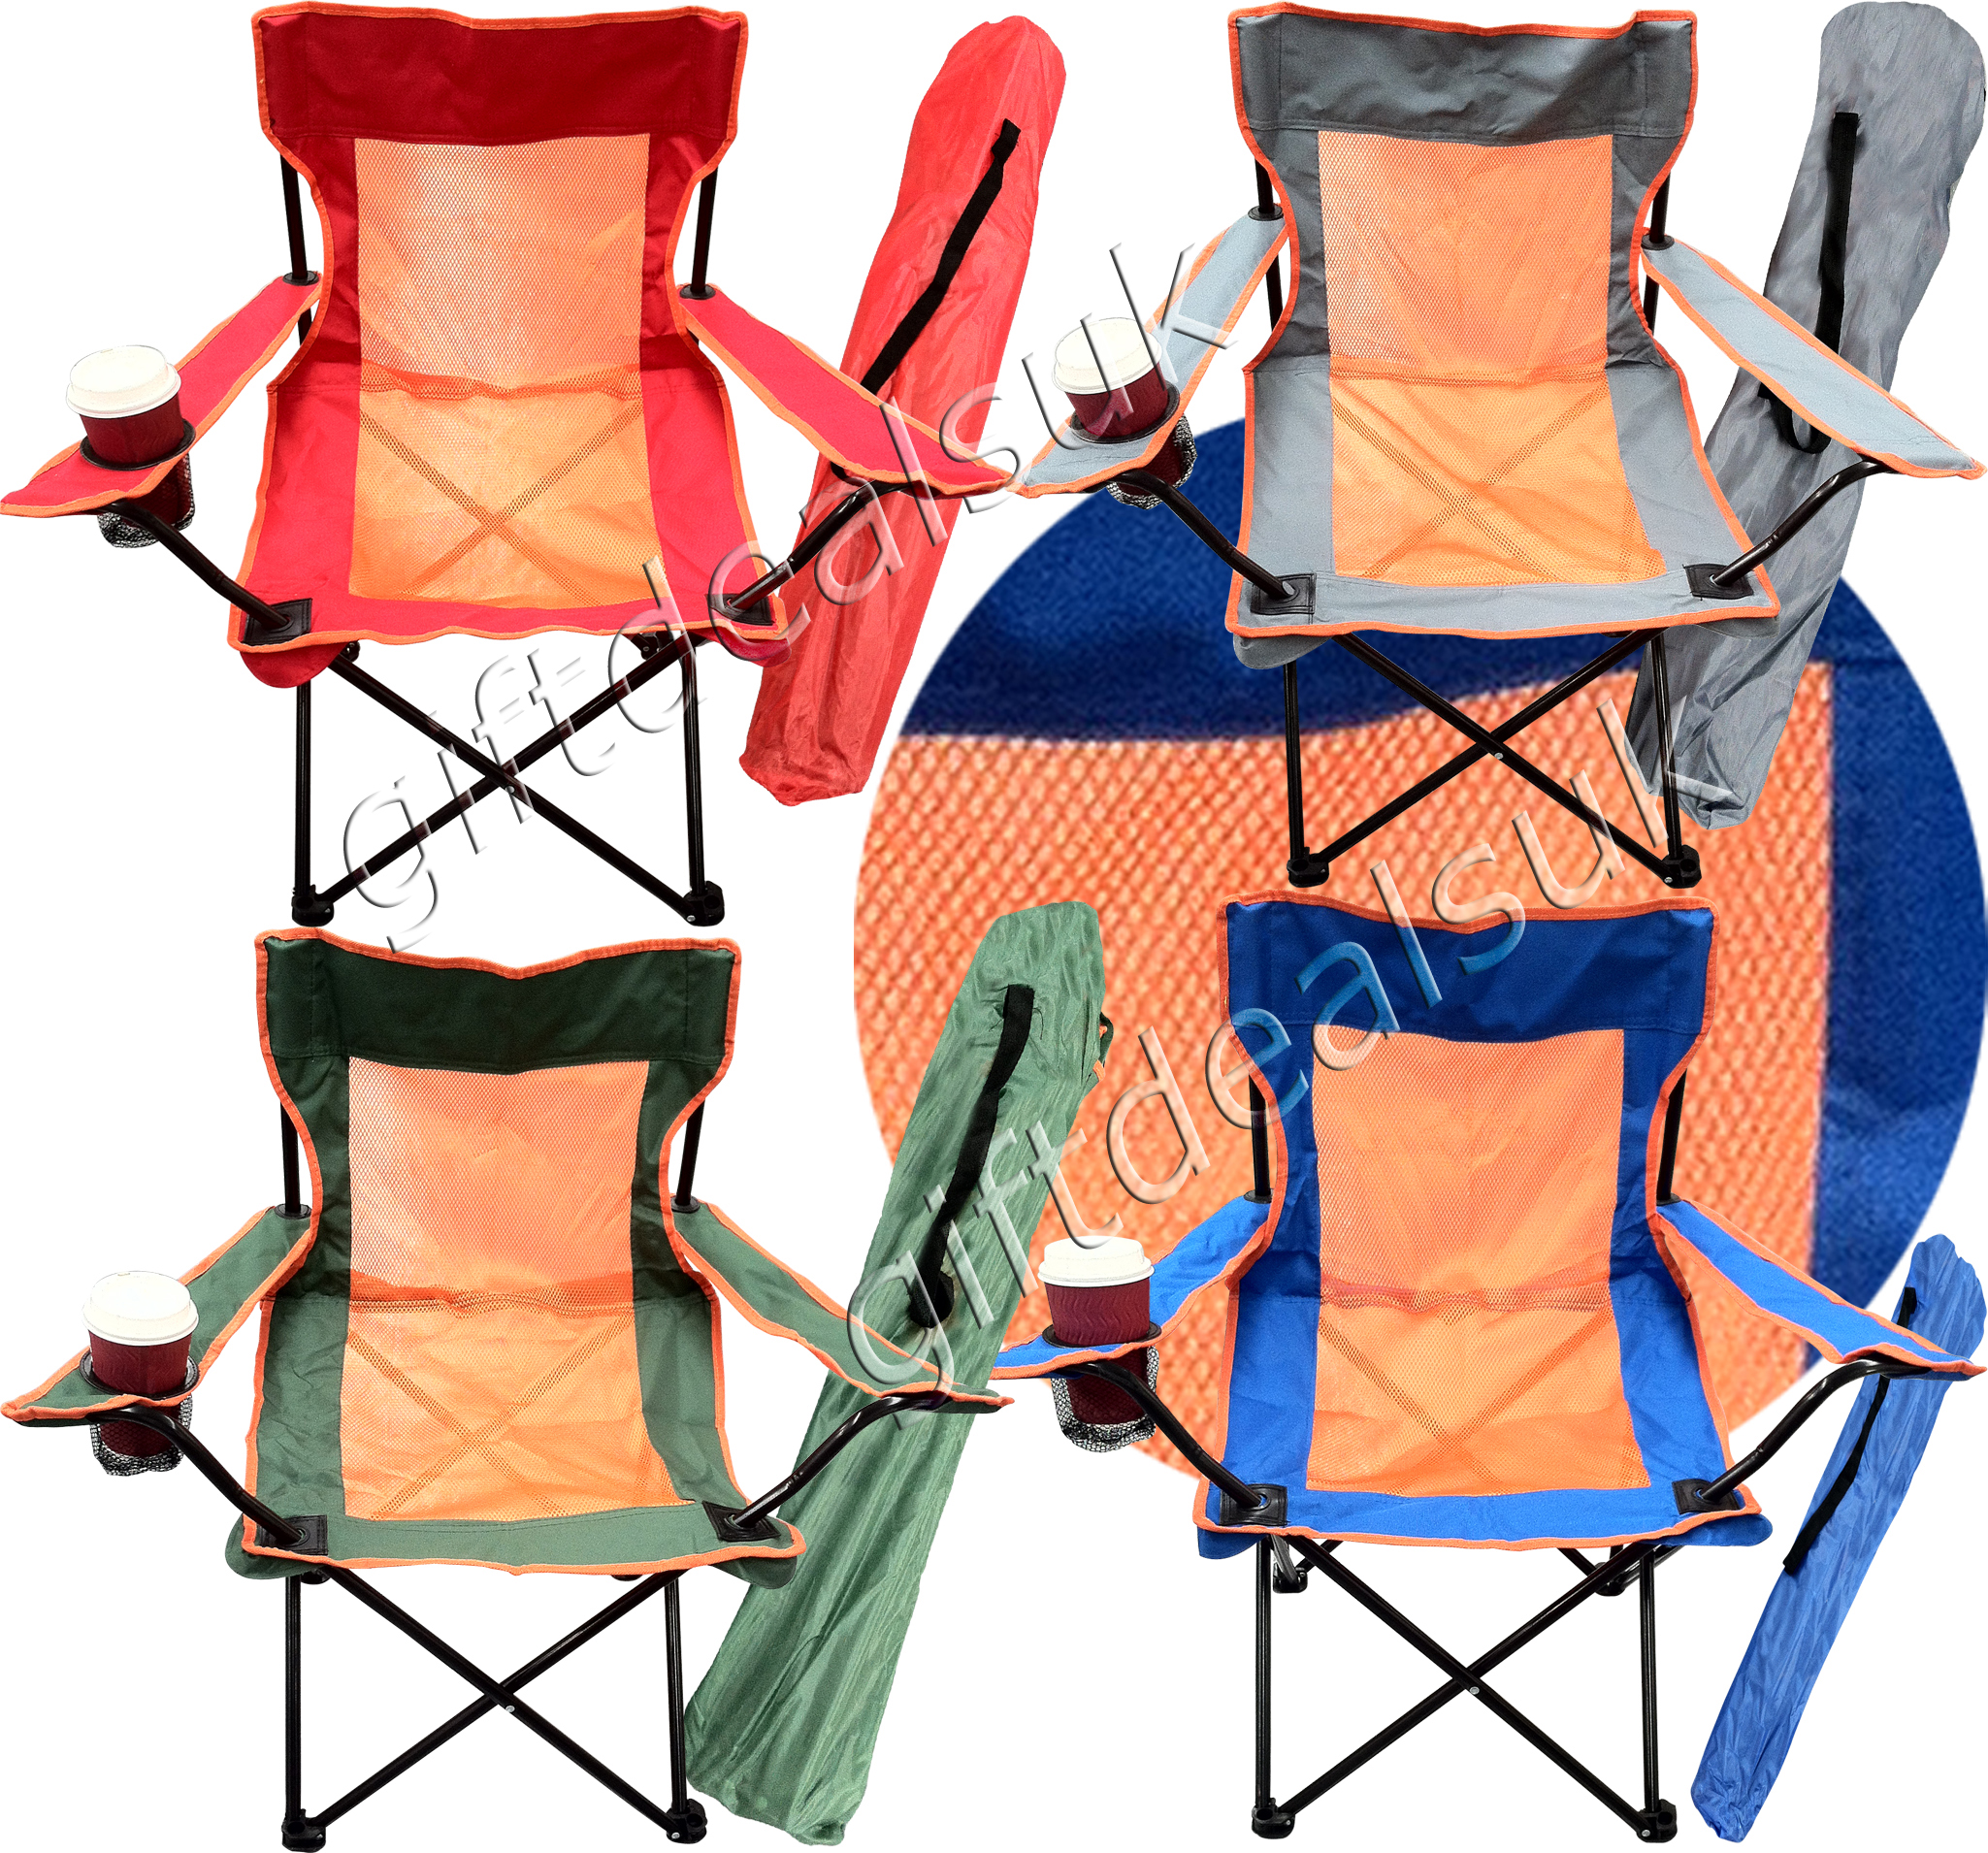 portable directors chair 2 office arms replacement parts folding camping cup holder 4